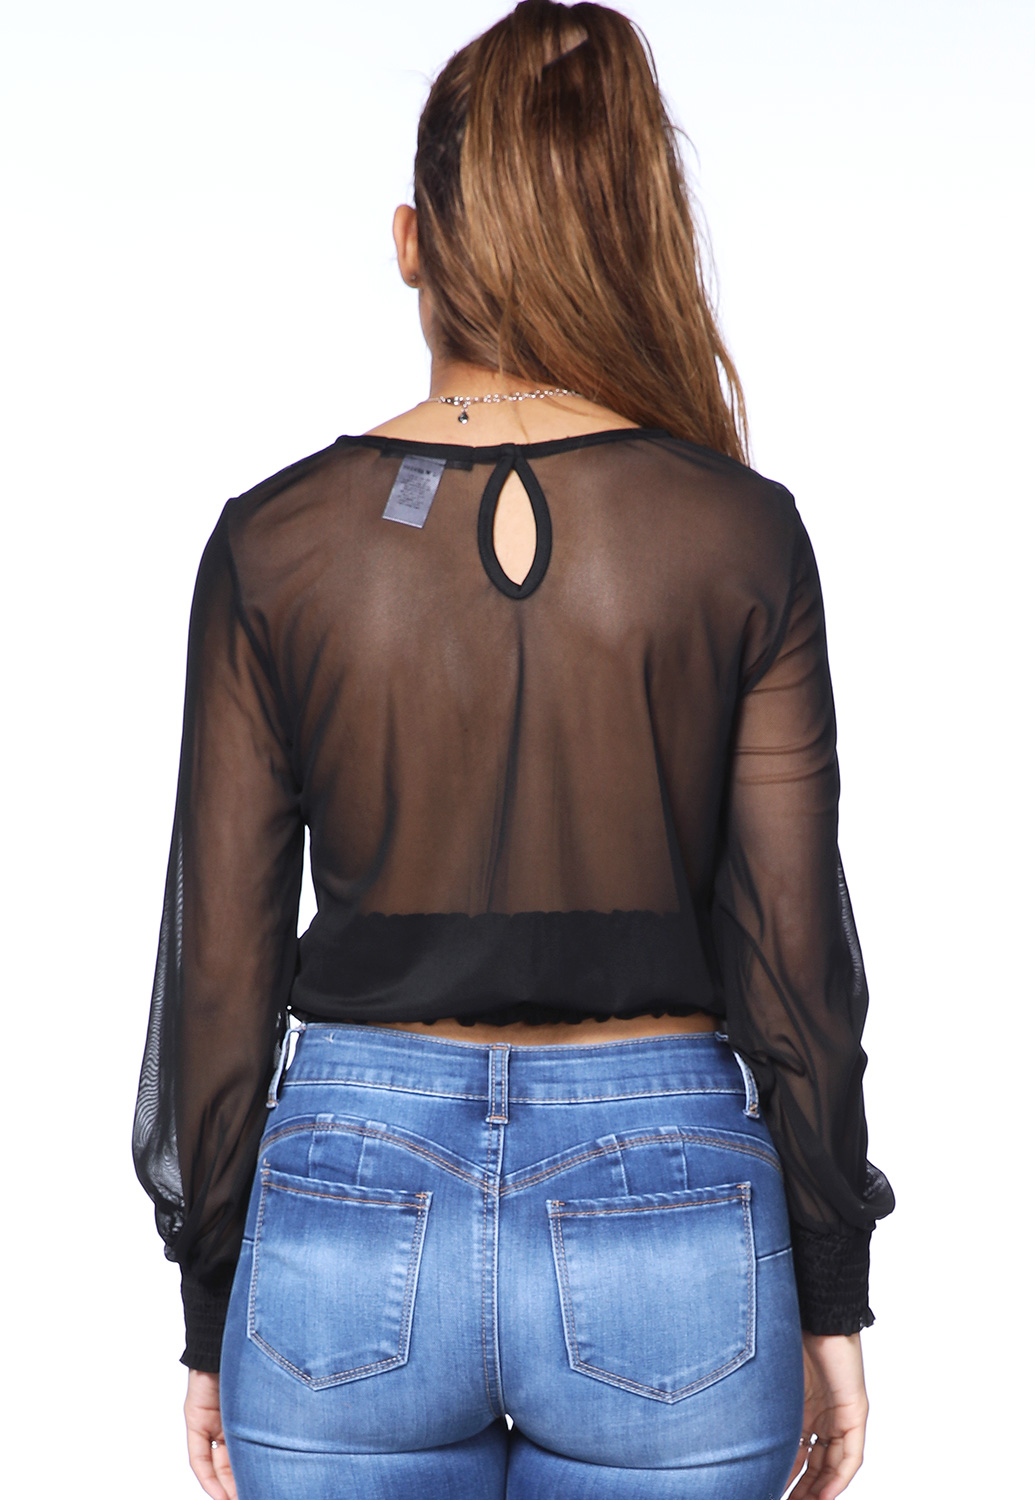 Sheer Mesh Glitter Embellished Top